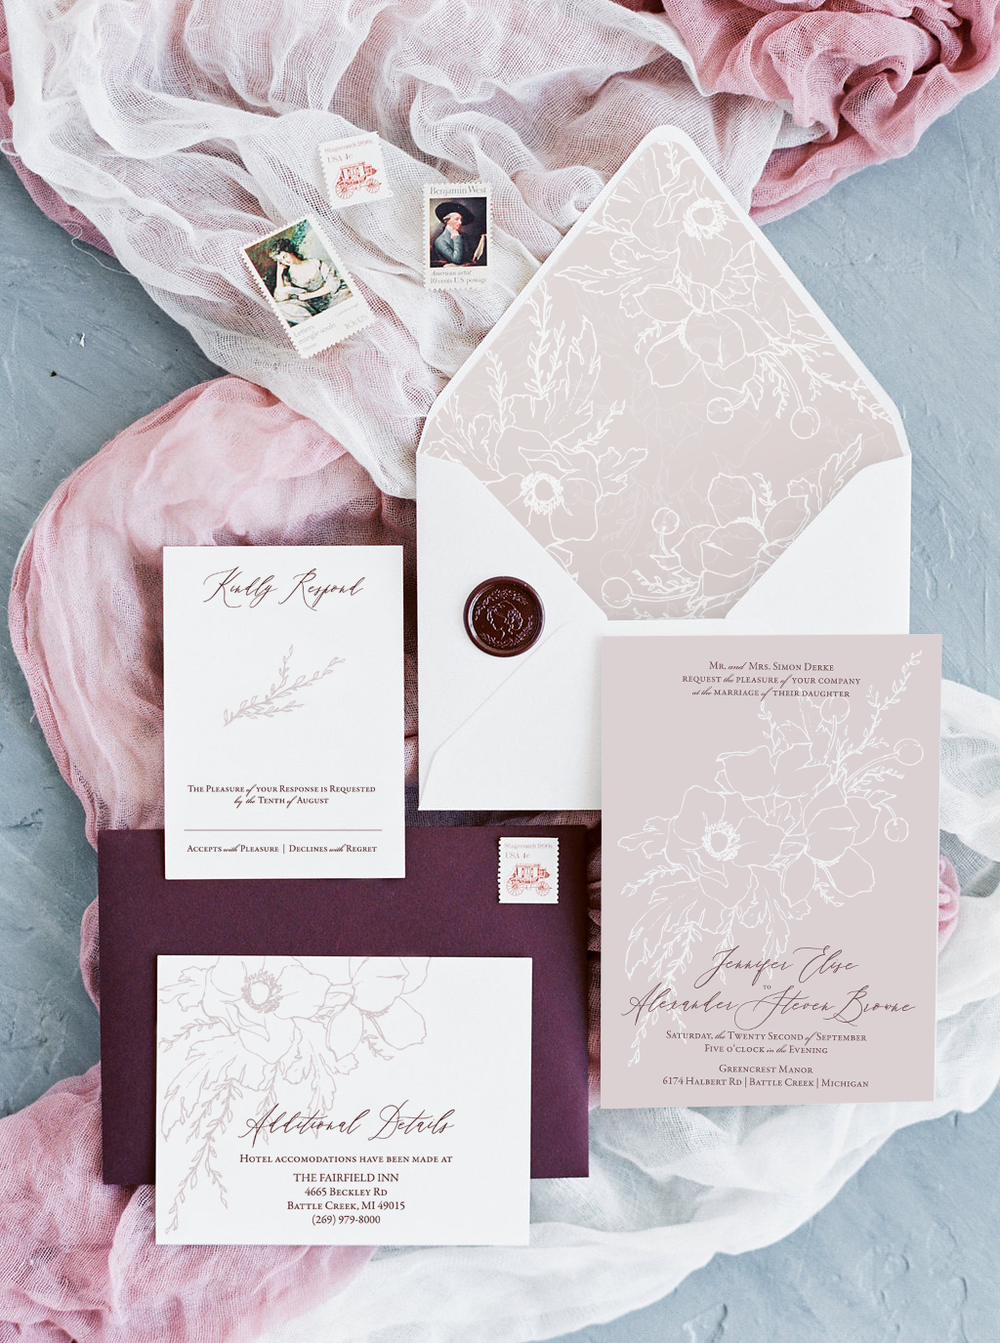 Modern floral wedding invitations in a beautiful blush color with burgundy envelopes and a custom wax seal.  Sketchy floral illustration by Katrina of Blushed Design, Wedding INvitations and Fine Art Portraits